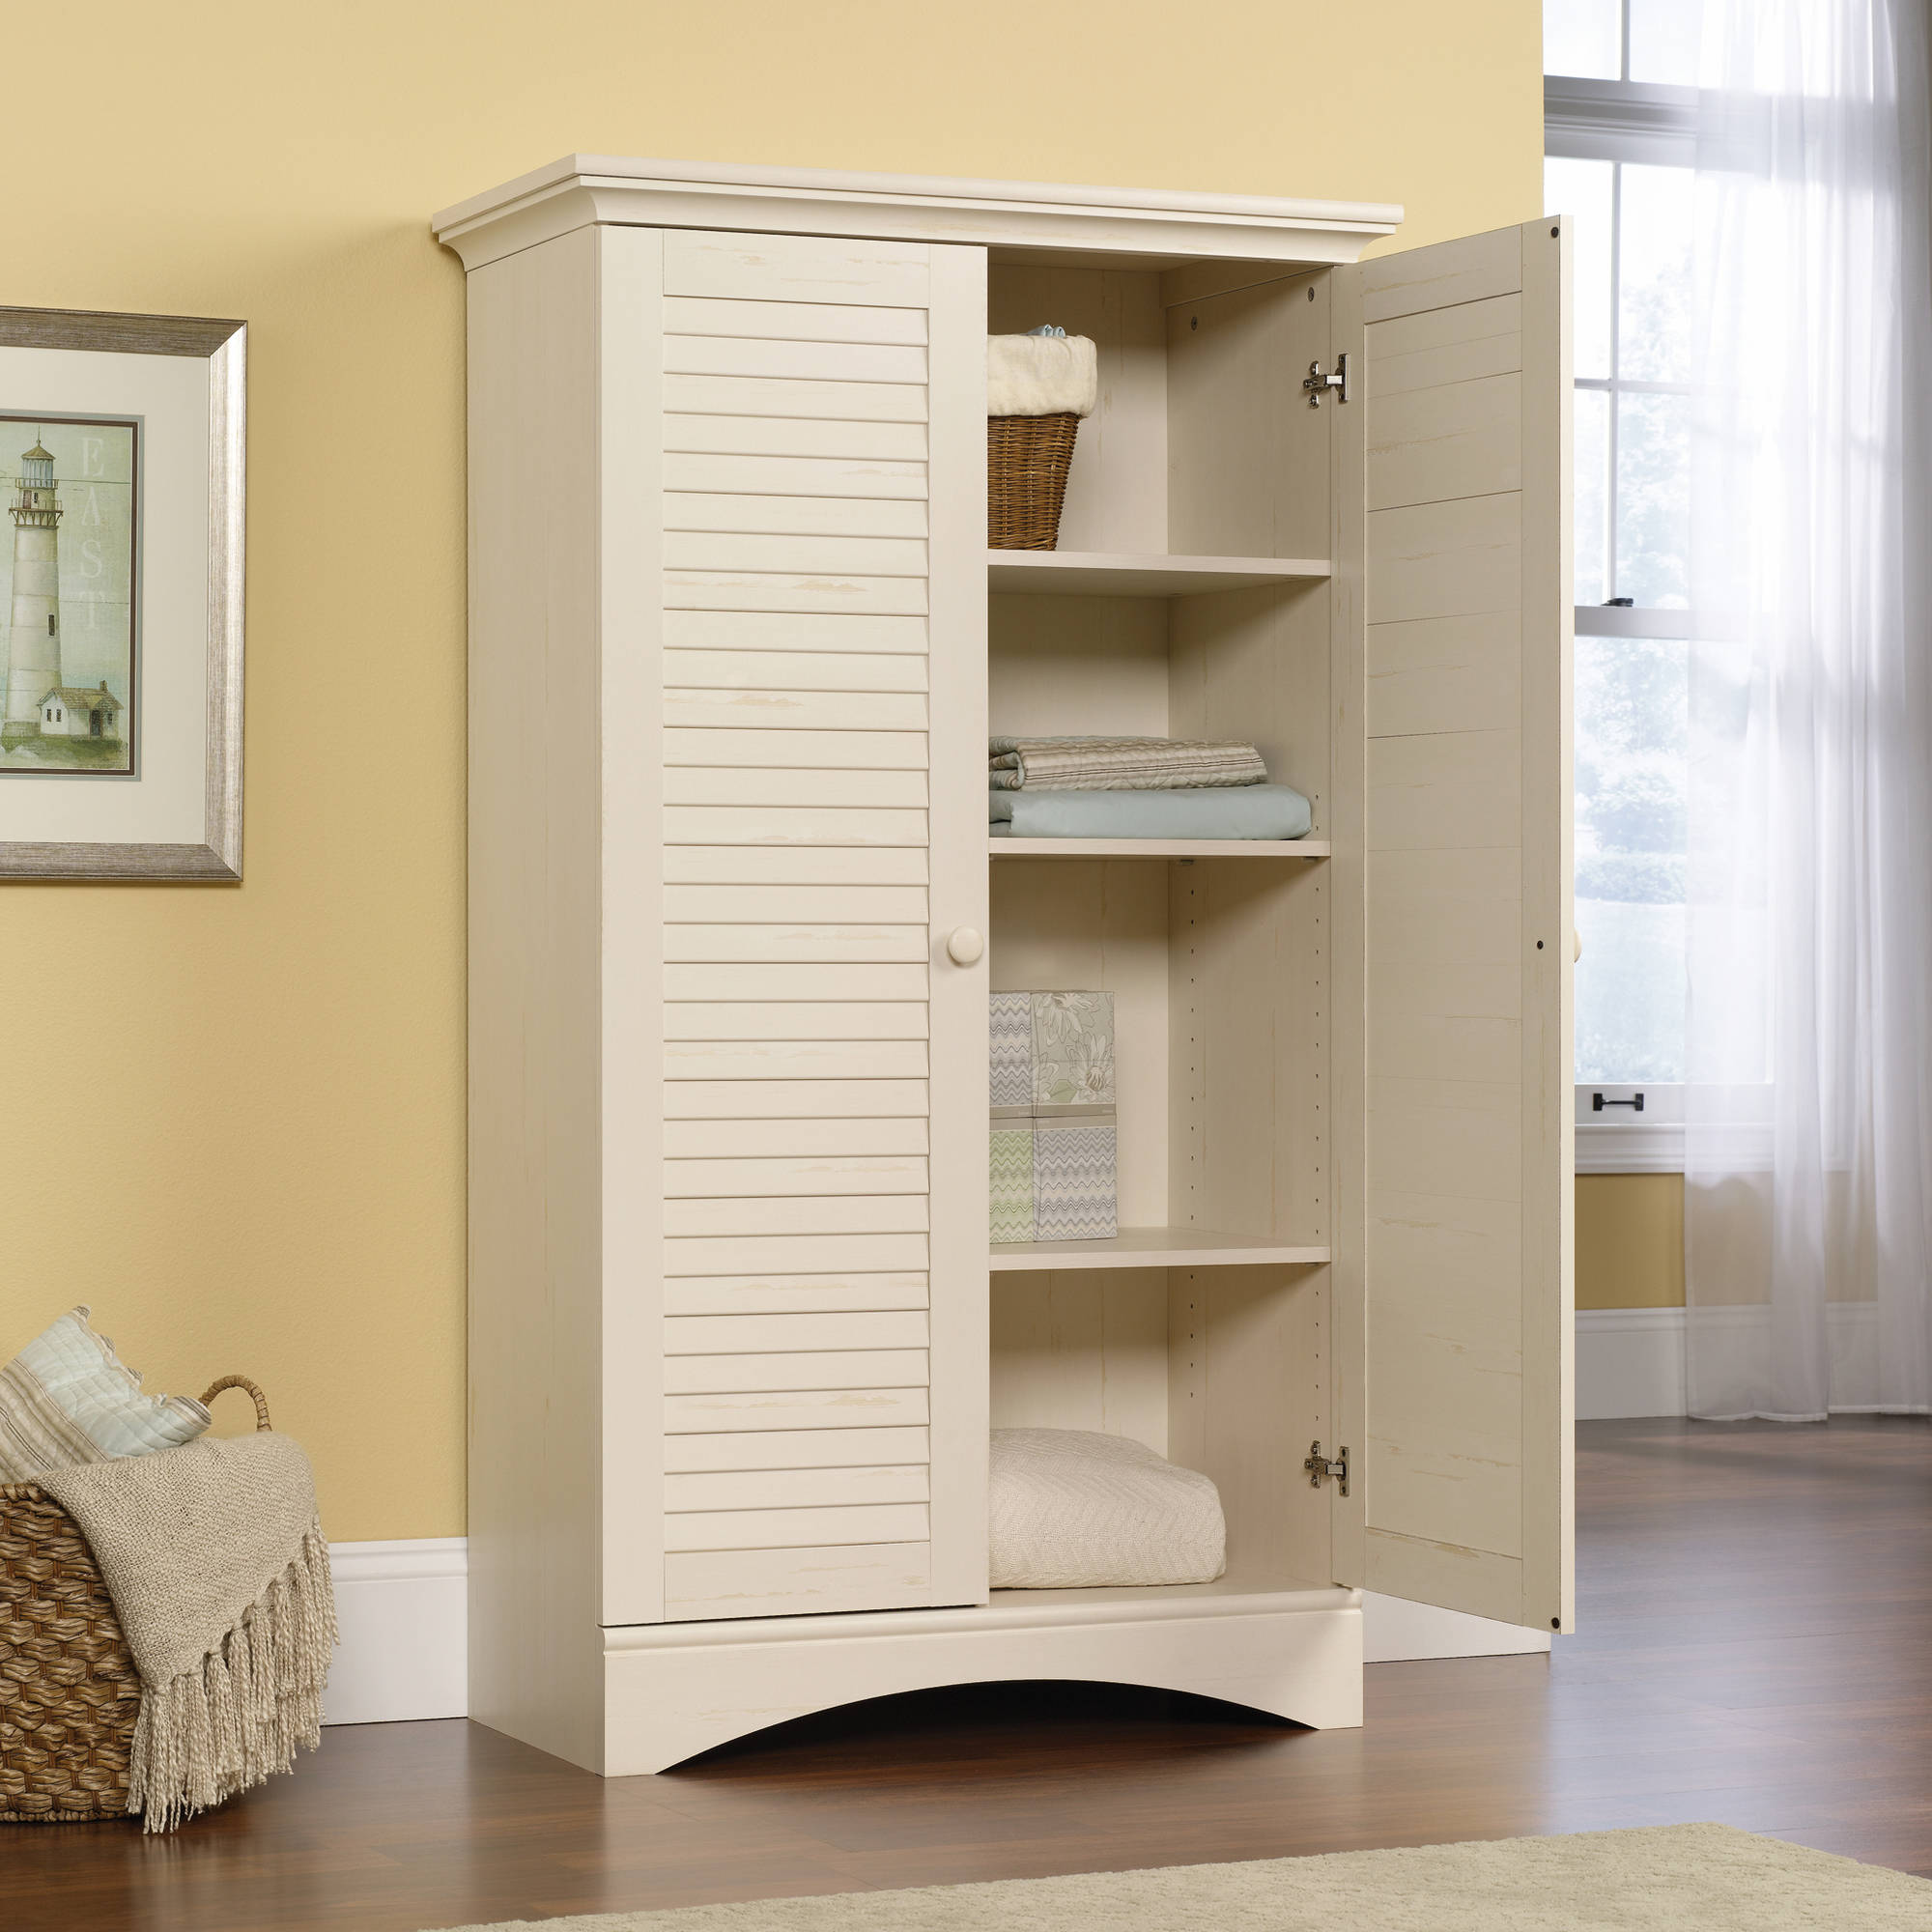 Tall Kitchen Storage Units: Pantry Storage Cabinet Laundry Room Organizer Tall Kitchen